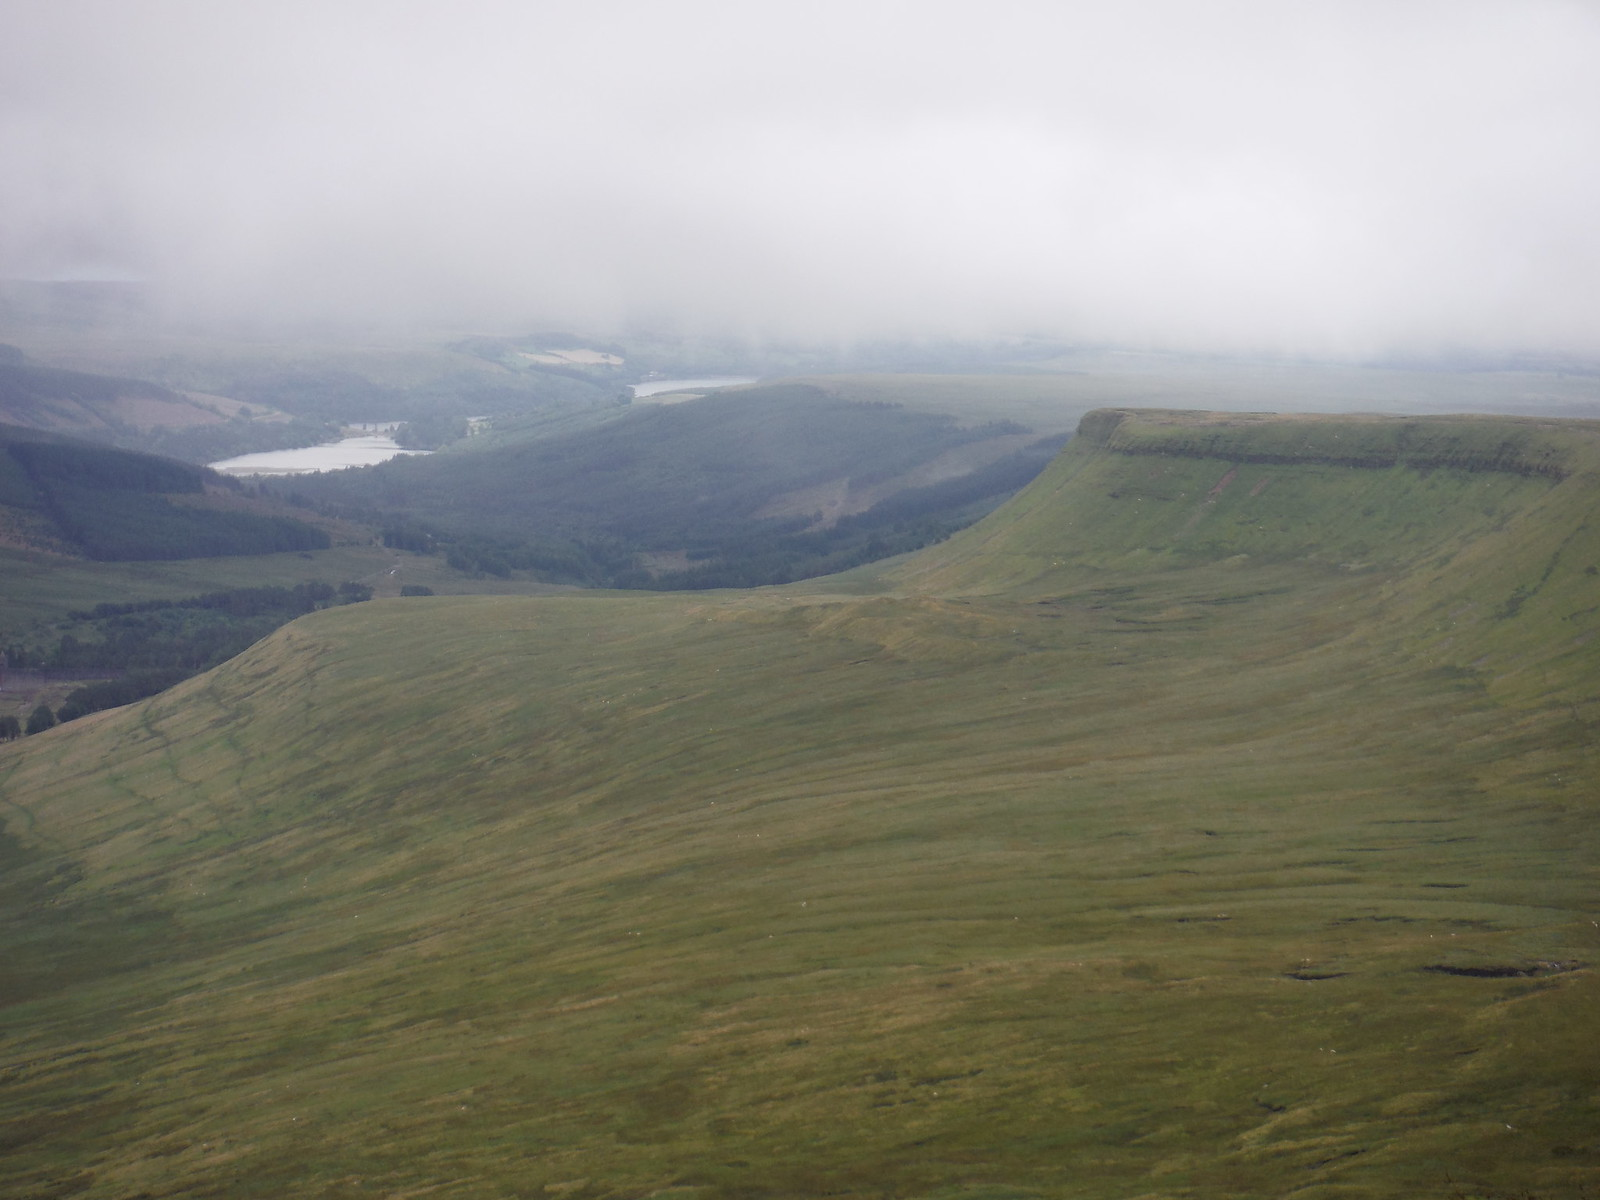 Pentwyn and Ponsticill Reservoirs, from Pen y Fan SWC Walk 278 Breacon Beacons Horseshoe - Bannau Brycheiniog